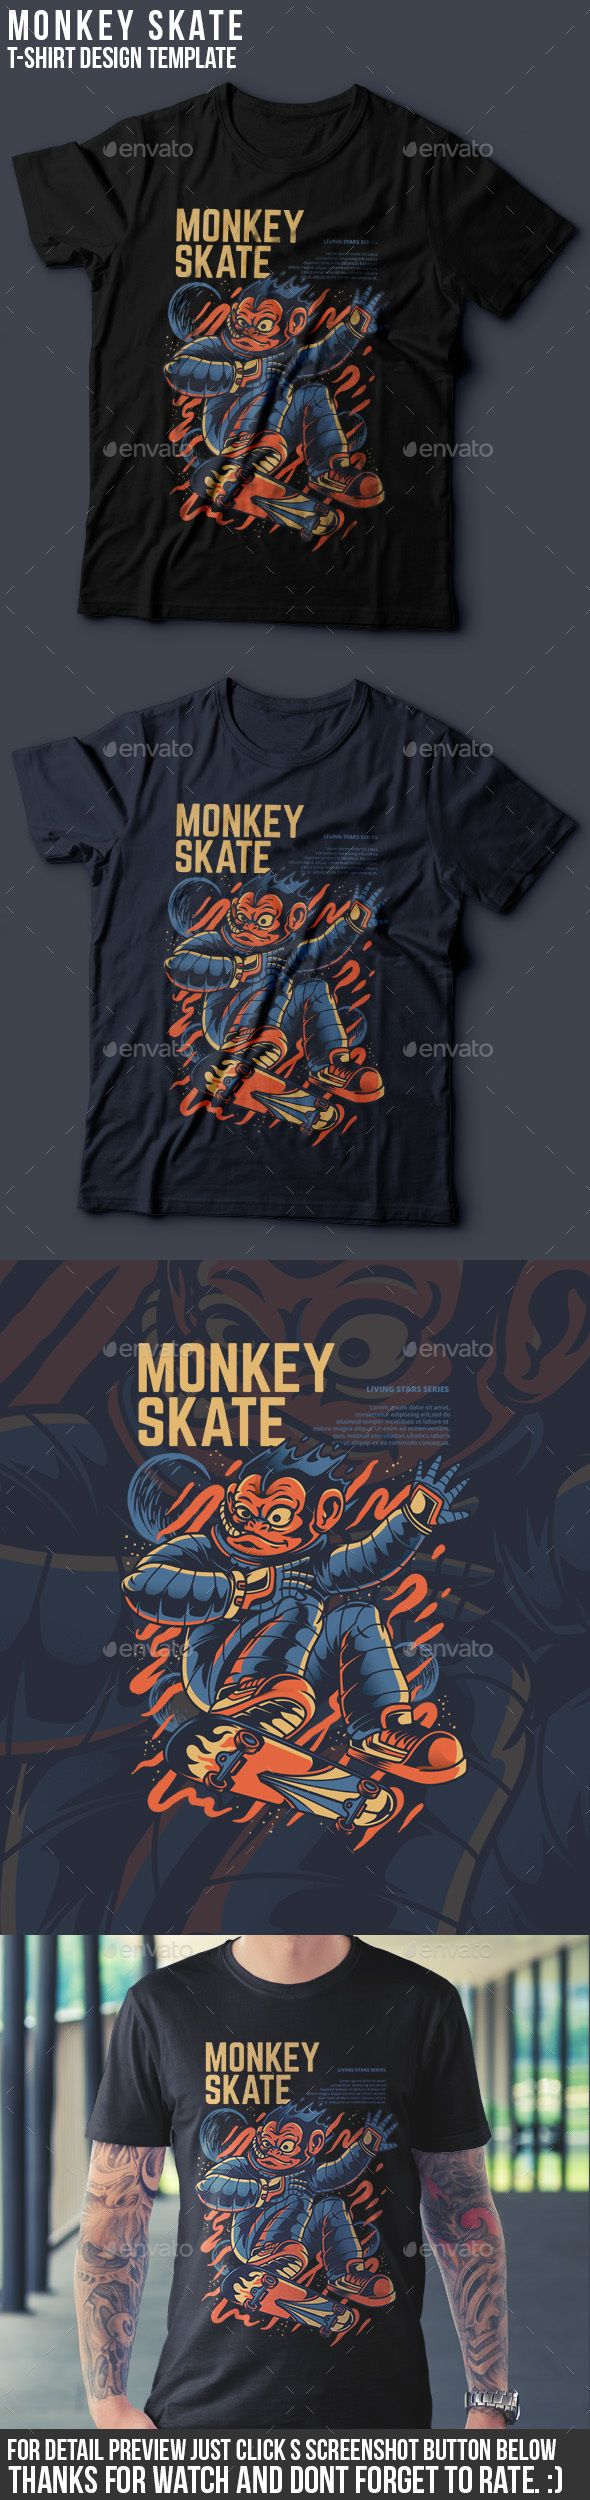 b815a8d3 Monkey Skate T-Shirt Design - Funny Designs. Monkey Skate TShirt Design # unique #design Download ...